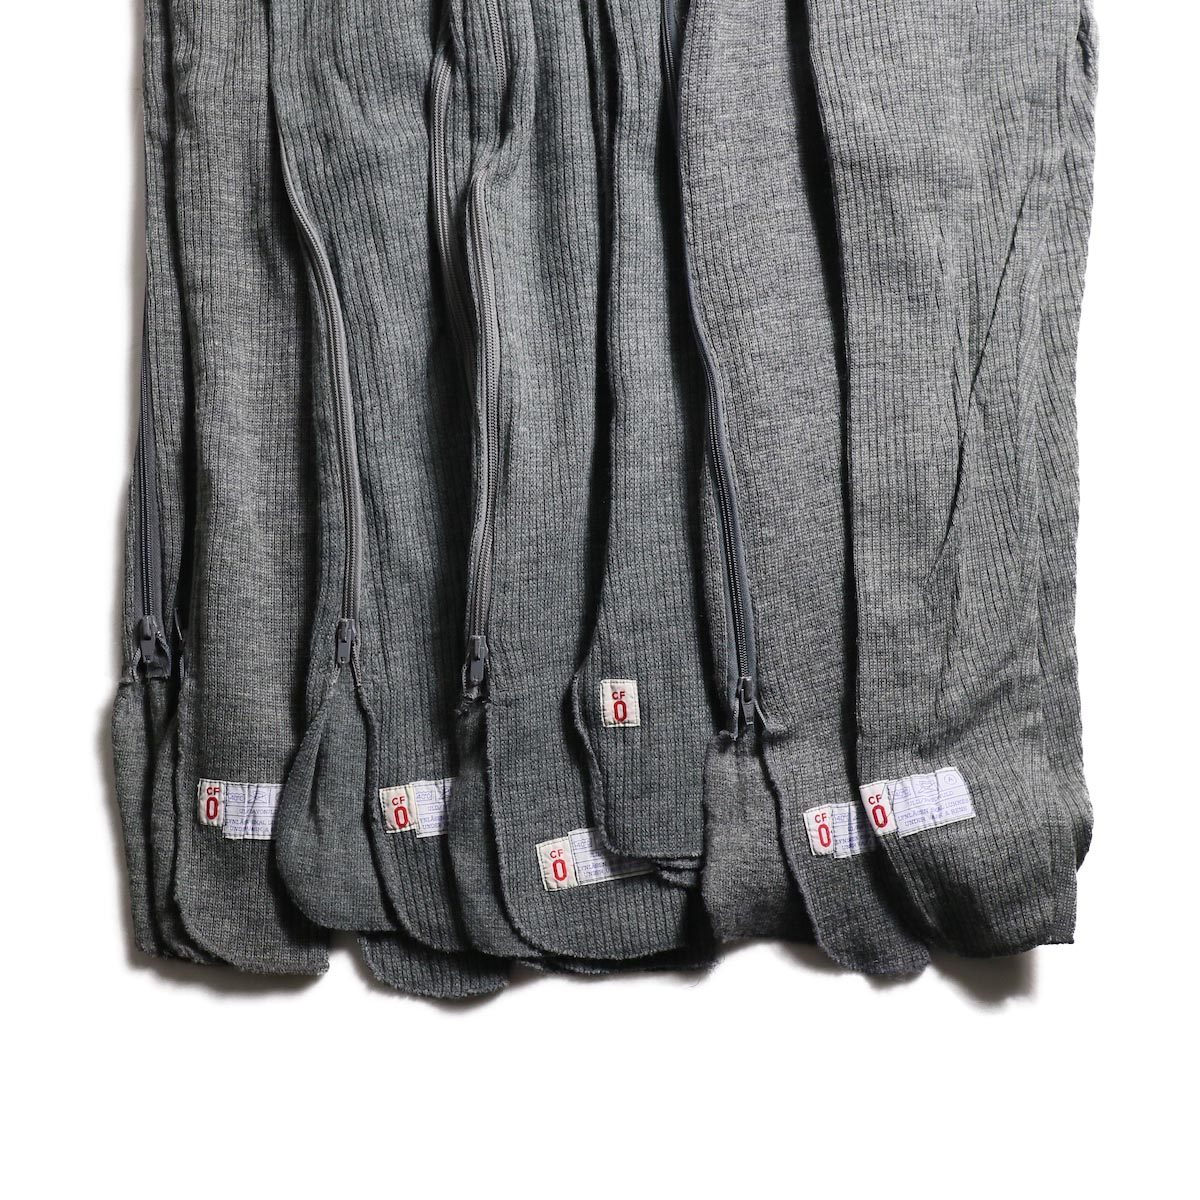 Denmark Military / Side Zip Under Pants (Small)